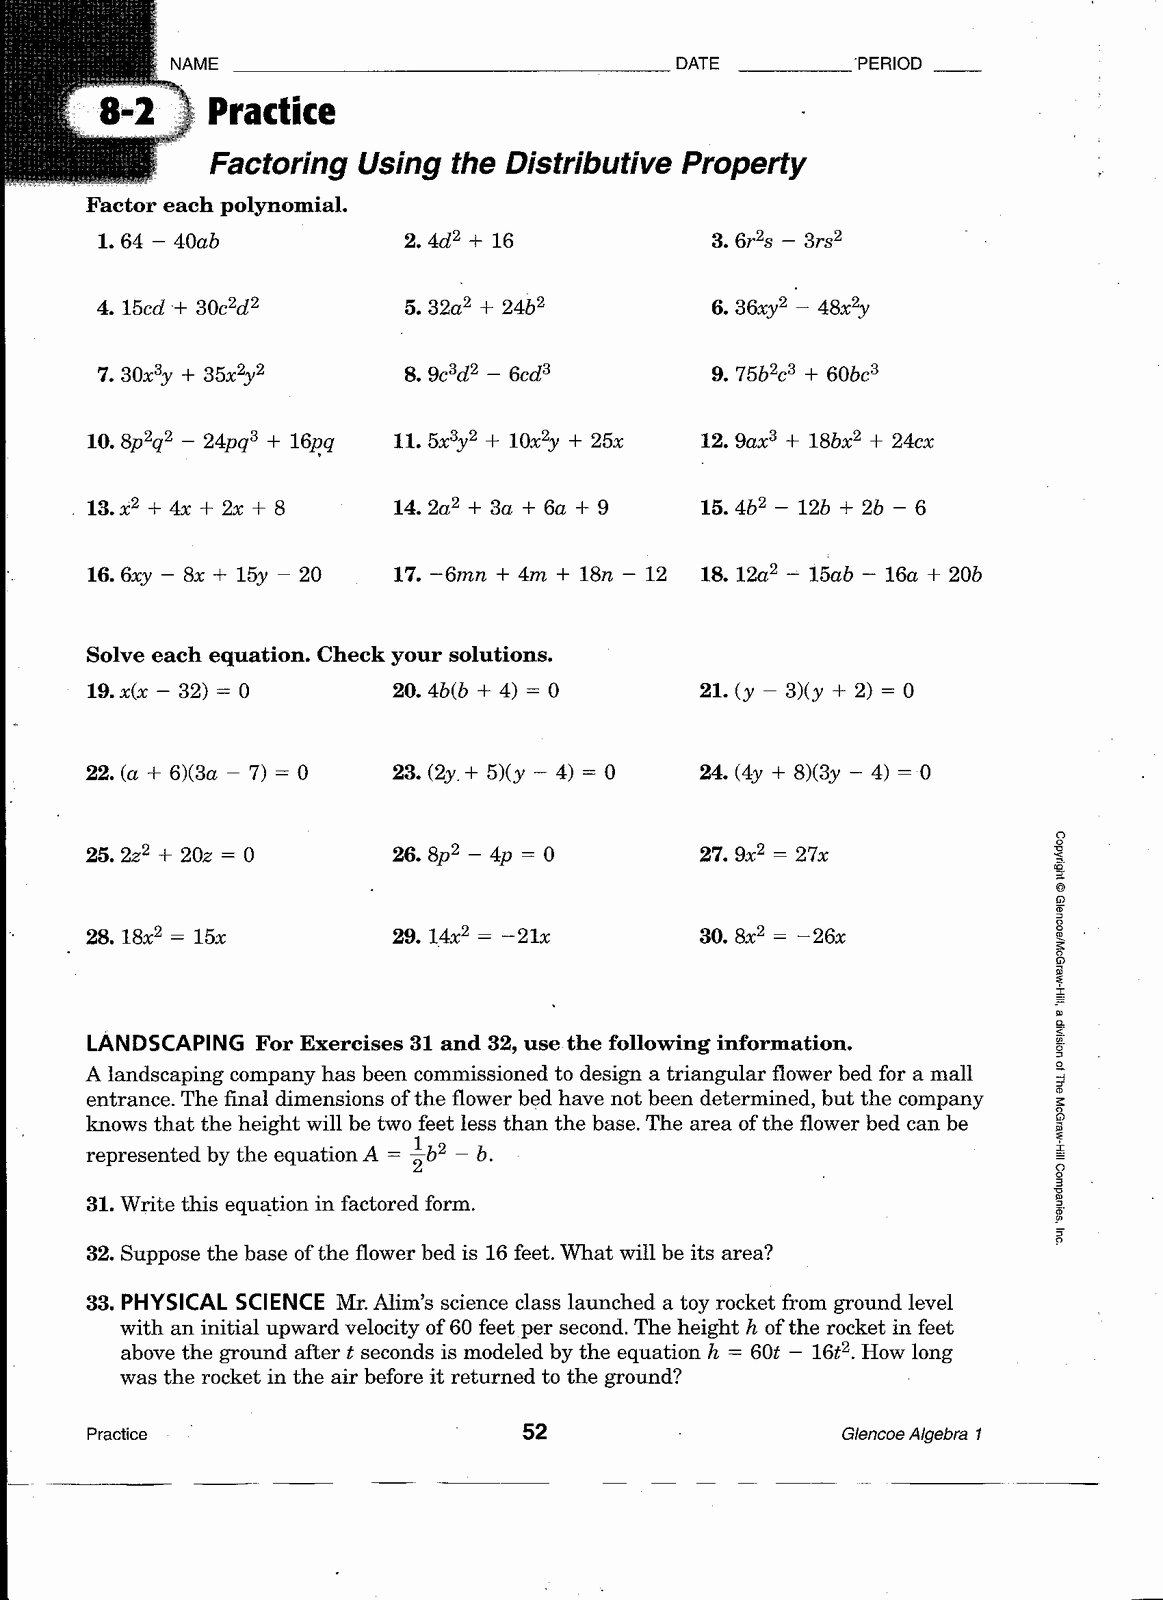 Factoring Worksheet Algebra 1 Lovely Math Practice Worksheets Chapter 1 Worksheet Mogenk